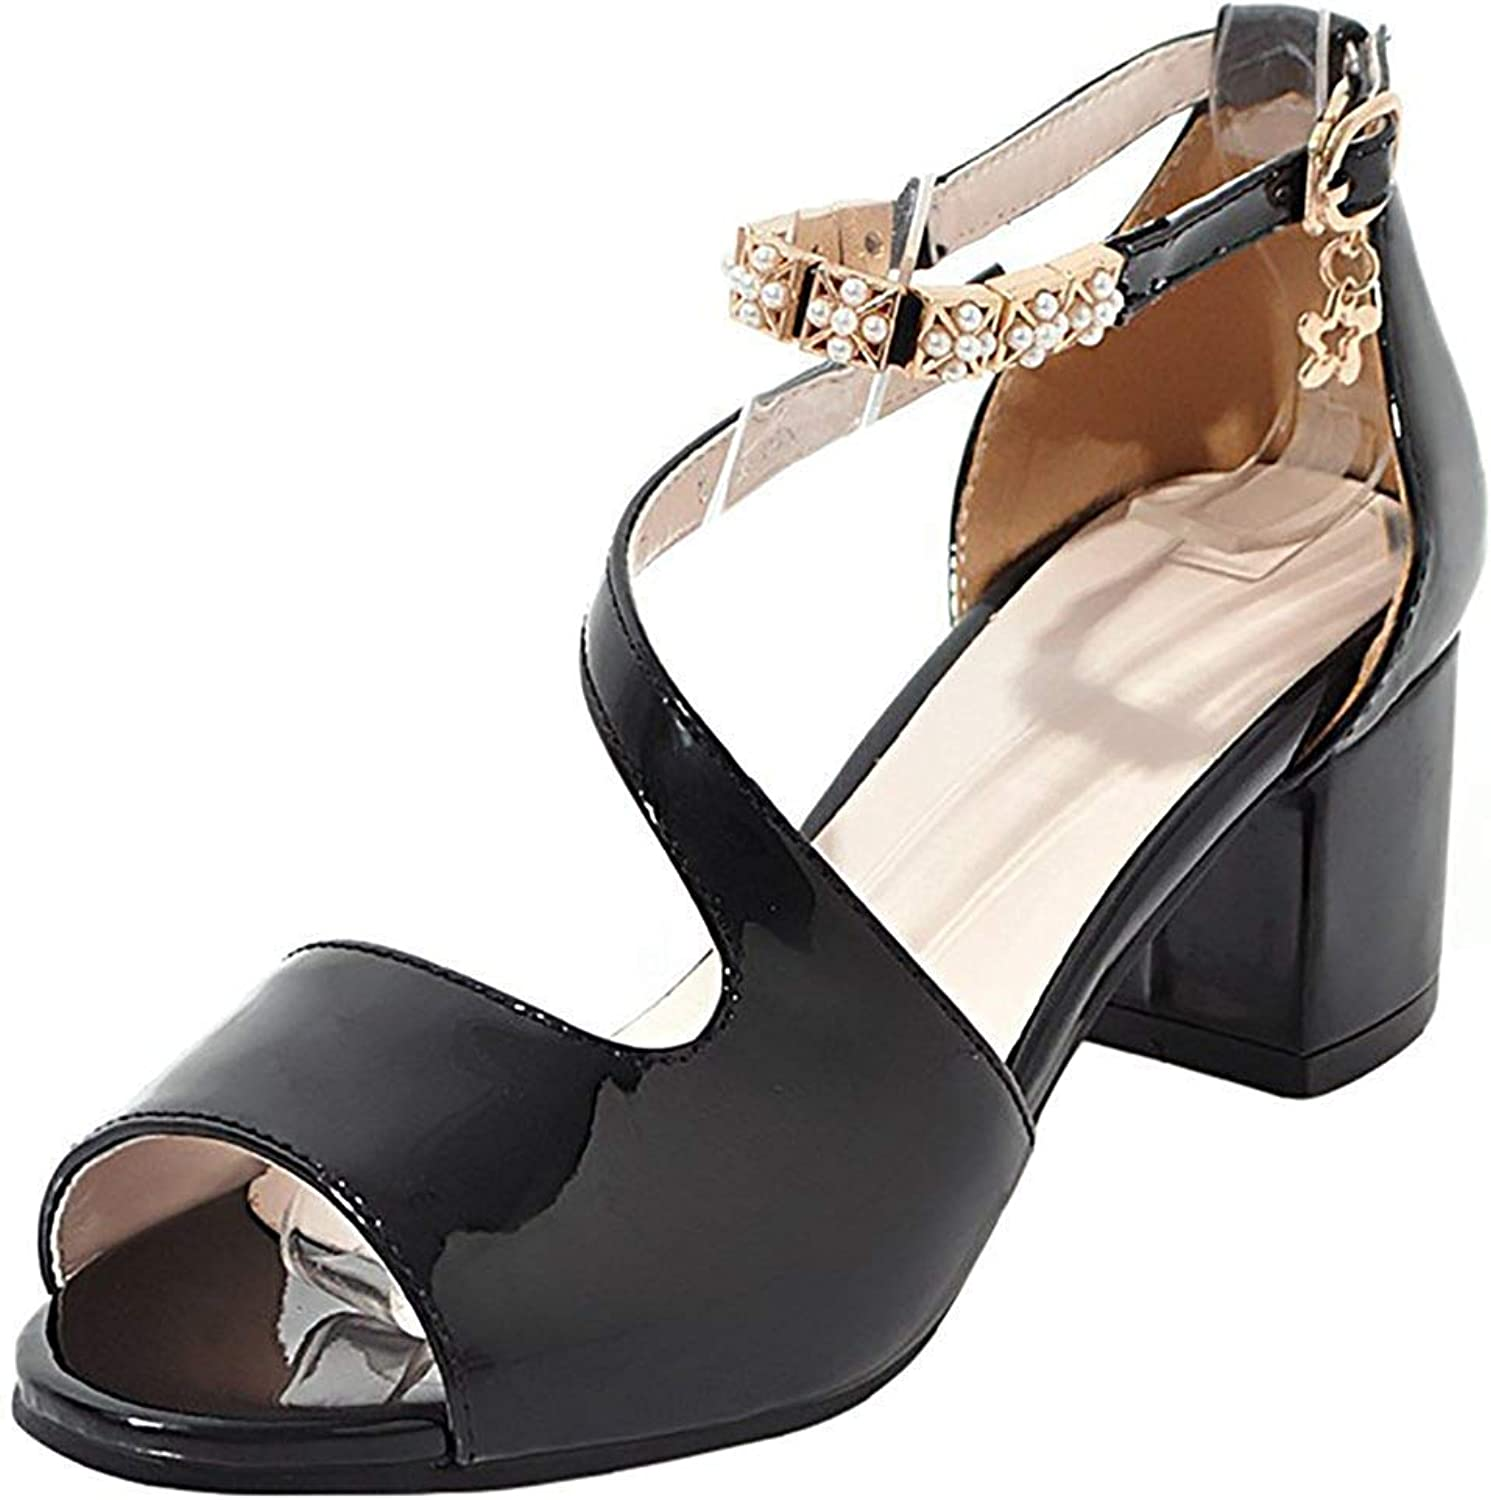 Wallhewb Women's Basic Beaded Buckle Peep Toe Ankle Strap Mid Chunky Heel Pumps Sandals Leather Evening Dress No Grinding Feet Closed Back Ankle Strap Party Low Top Fashion Black 8 M US Pumps Sandals